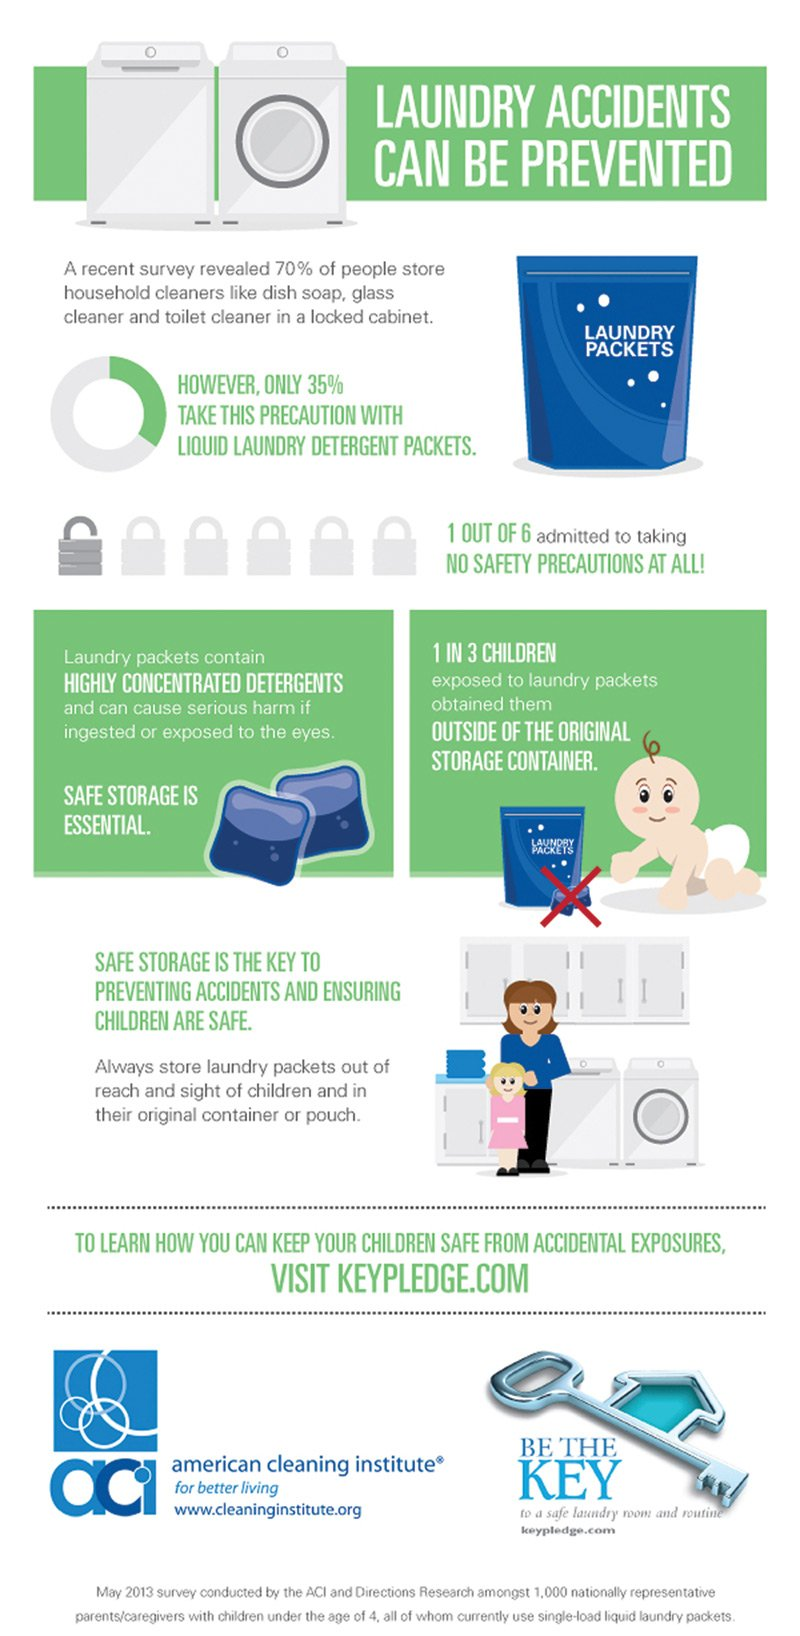 Laundry Packet Safety 101